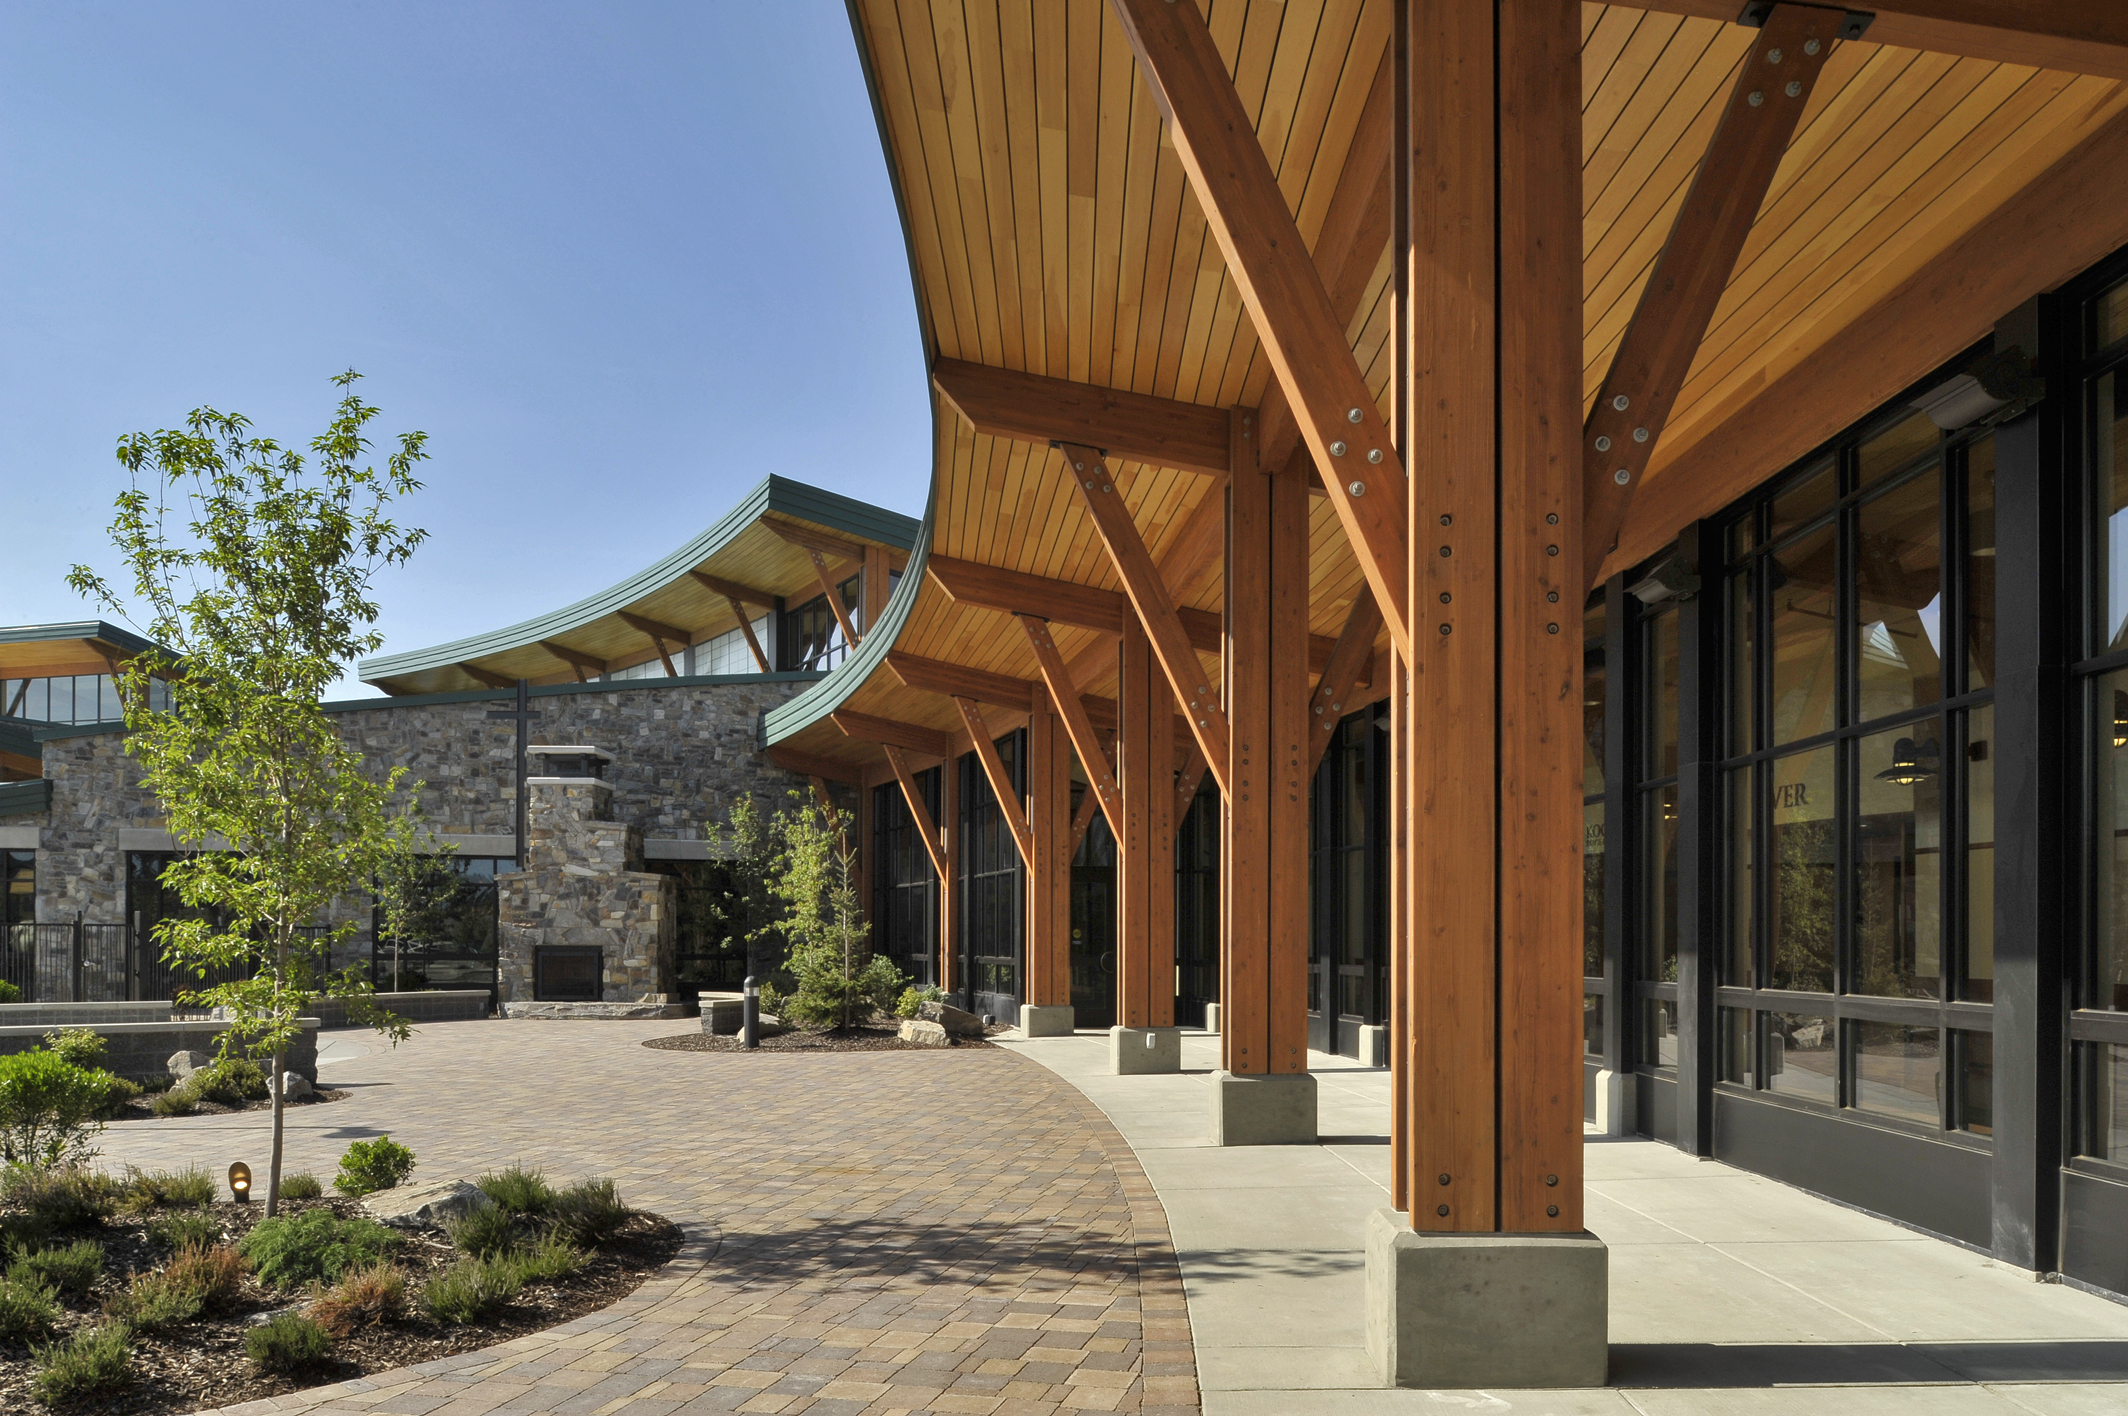 The Kroc Center is a community center located in Coeur d'Alene Idaho. The design includes state of the art aquatic pools, a gymnasium, community rooms, an aerobics studio, and a world class theater.